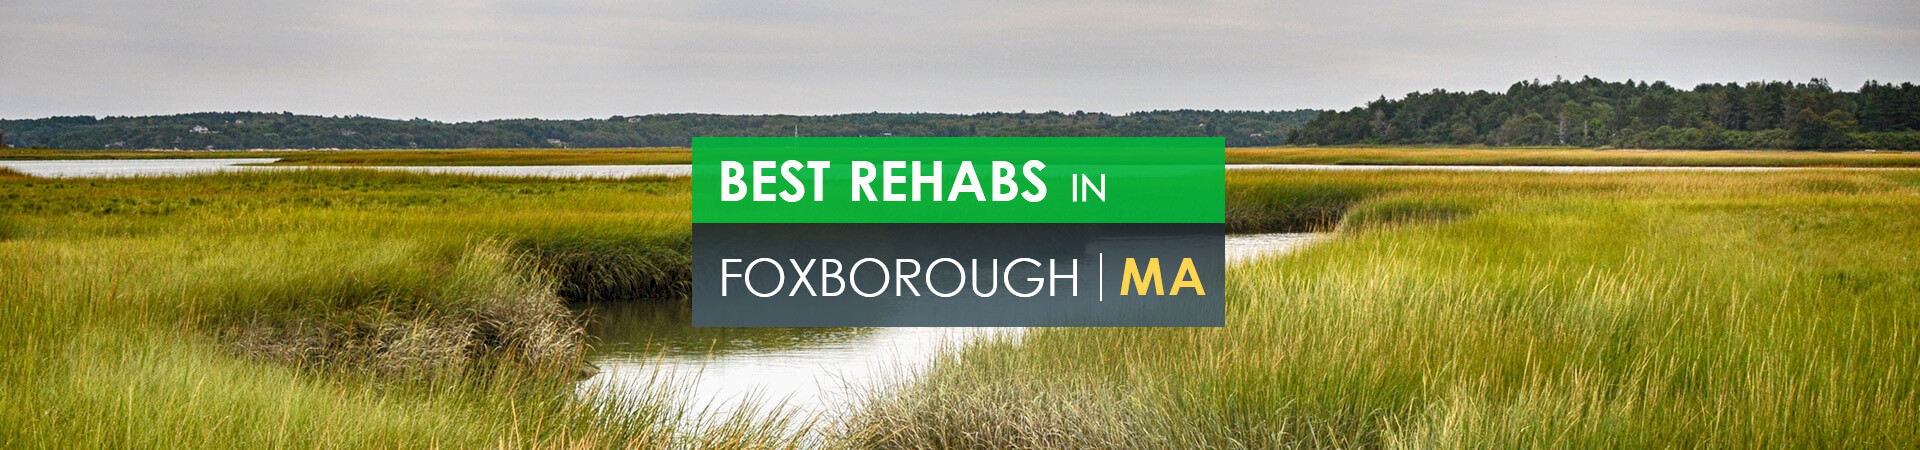 Best rehabs in Foxborough, MA